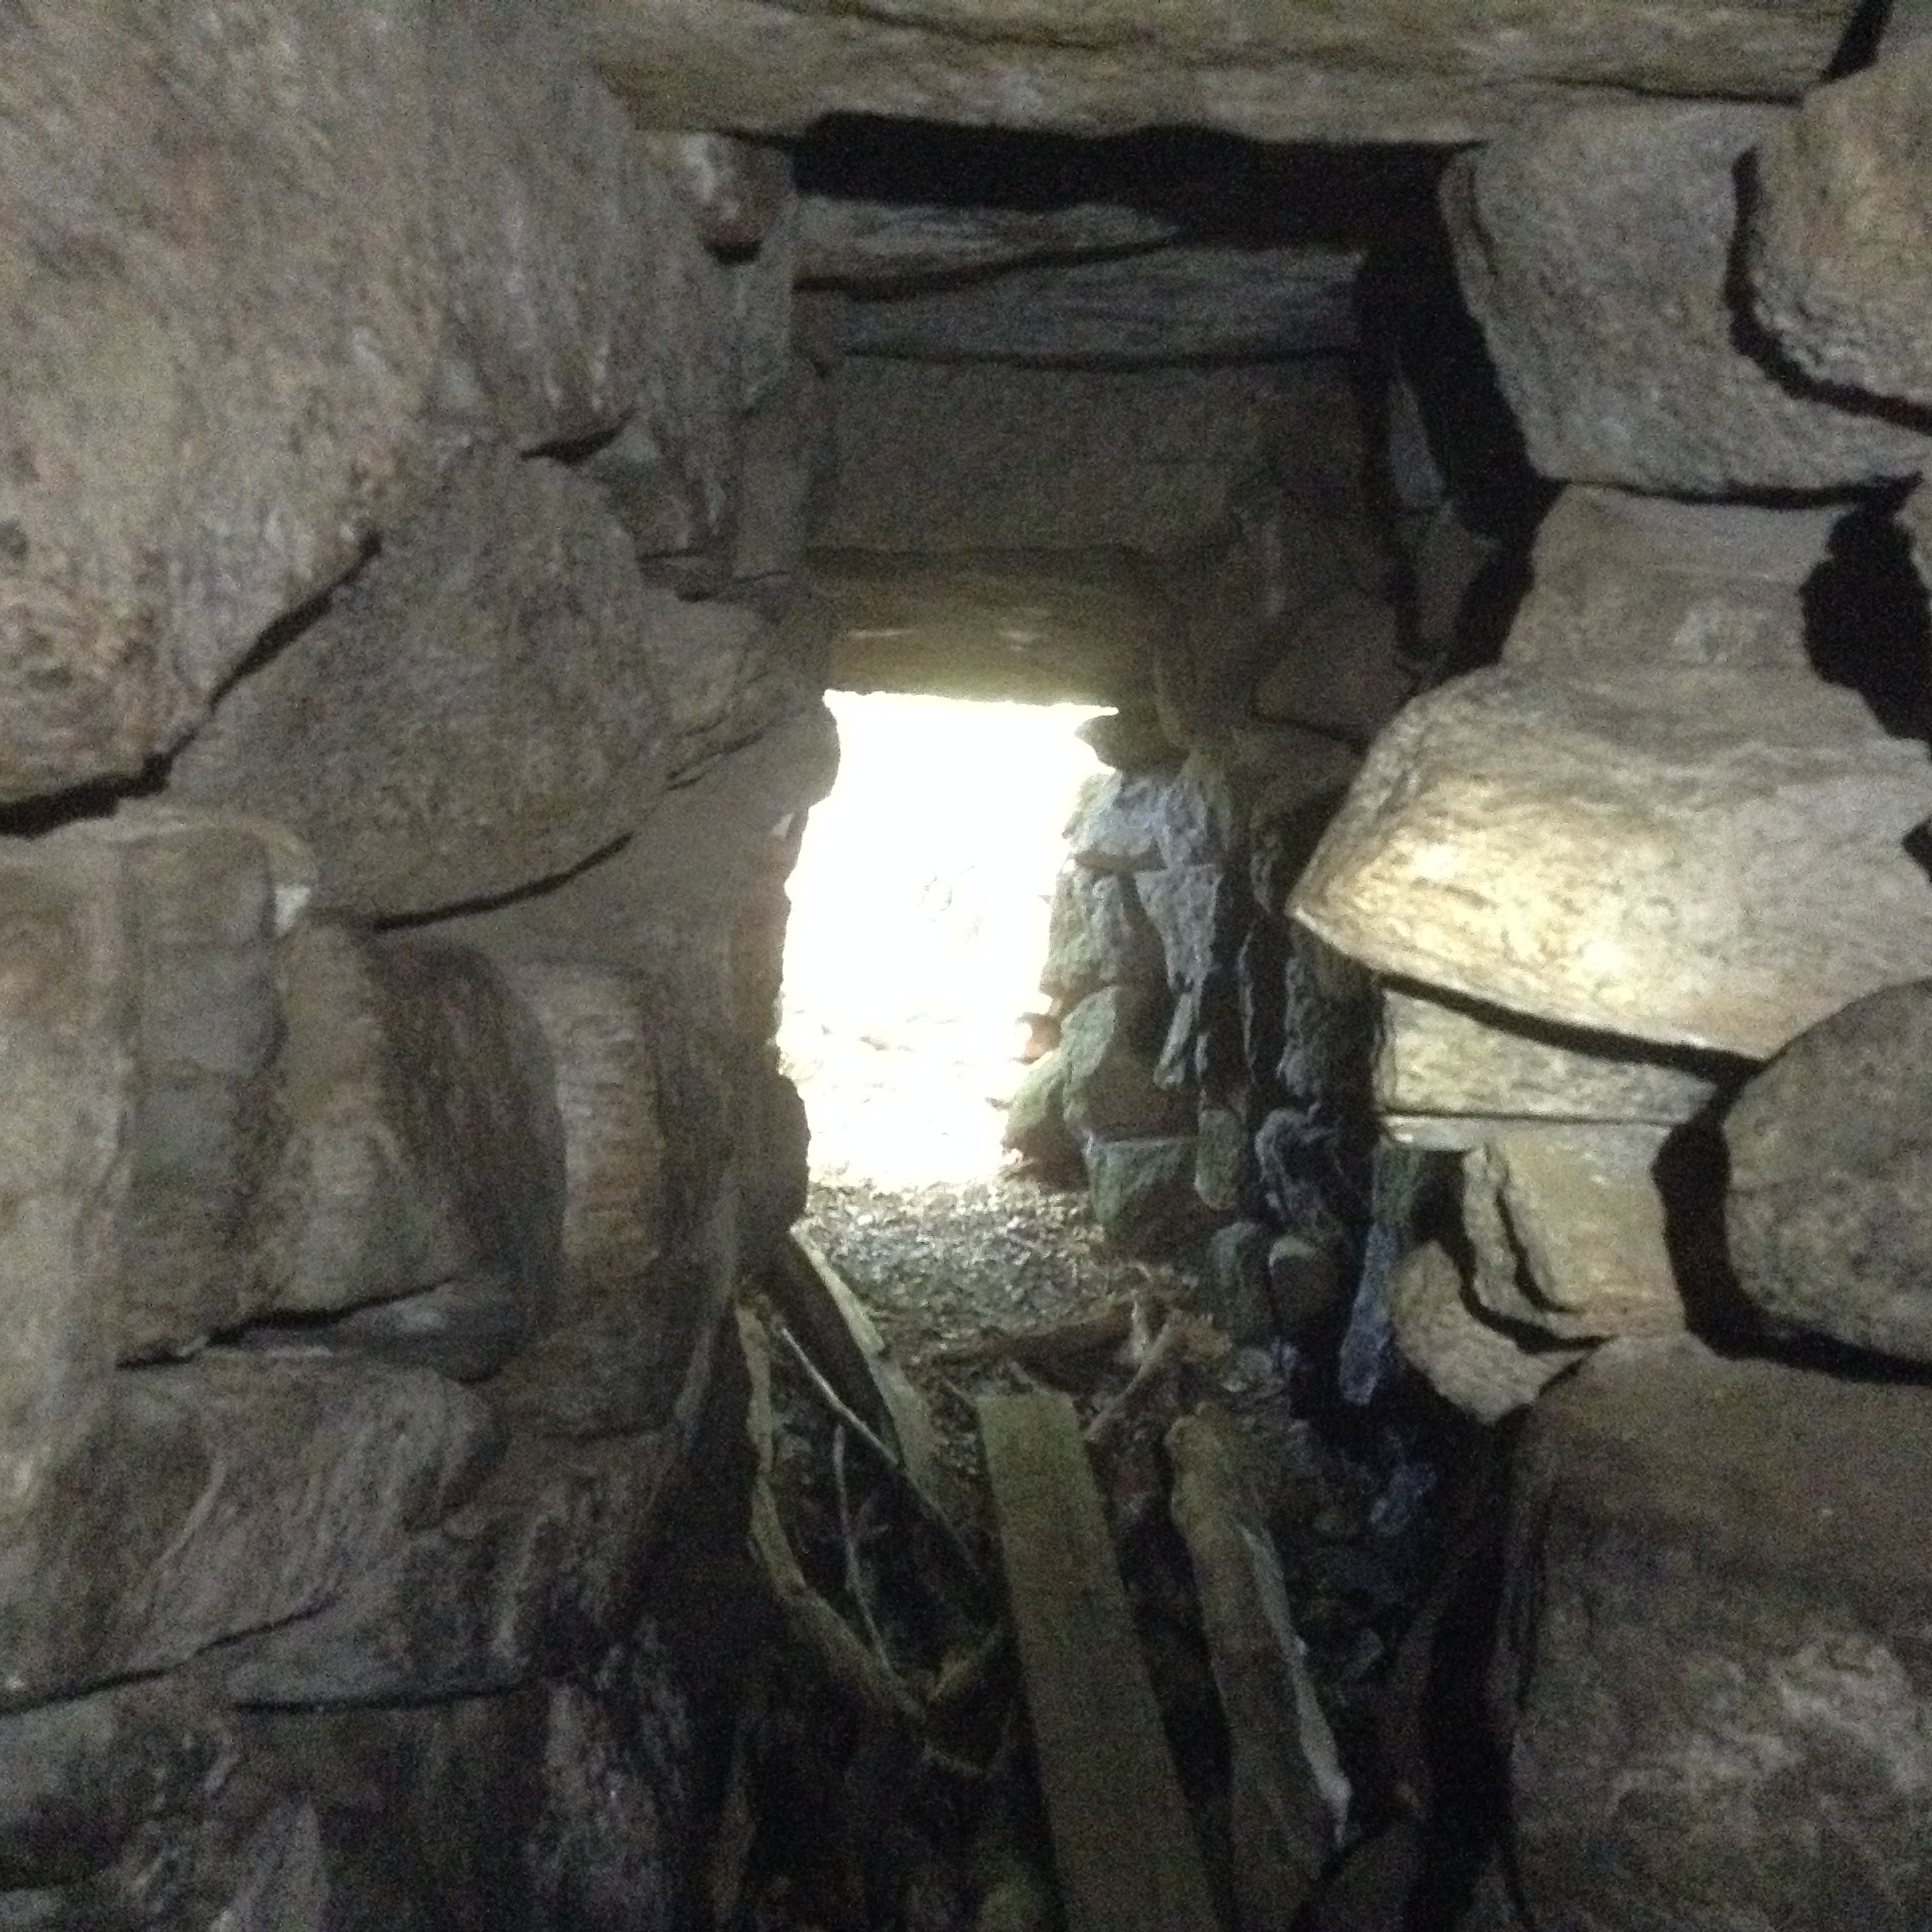 """Above: looking out from the point of transition between the passage and the corbelled chamber (which is behind the viewer). Note the size of the horizontal """"roof slabs,"""" all of which are """"underground."""" When the visitor approaches the chamber for the first time, the approaching trail leads them to a point at which they are standing on the earth that is above this underground passage and the domed chamber behind."""